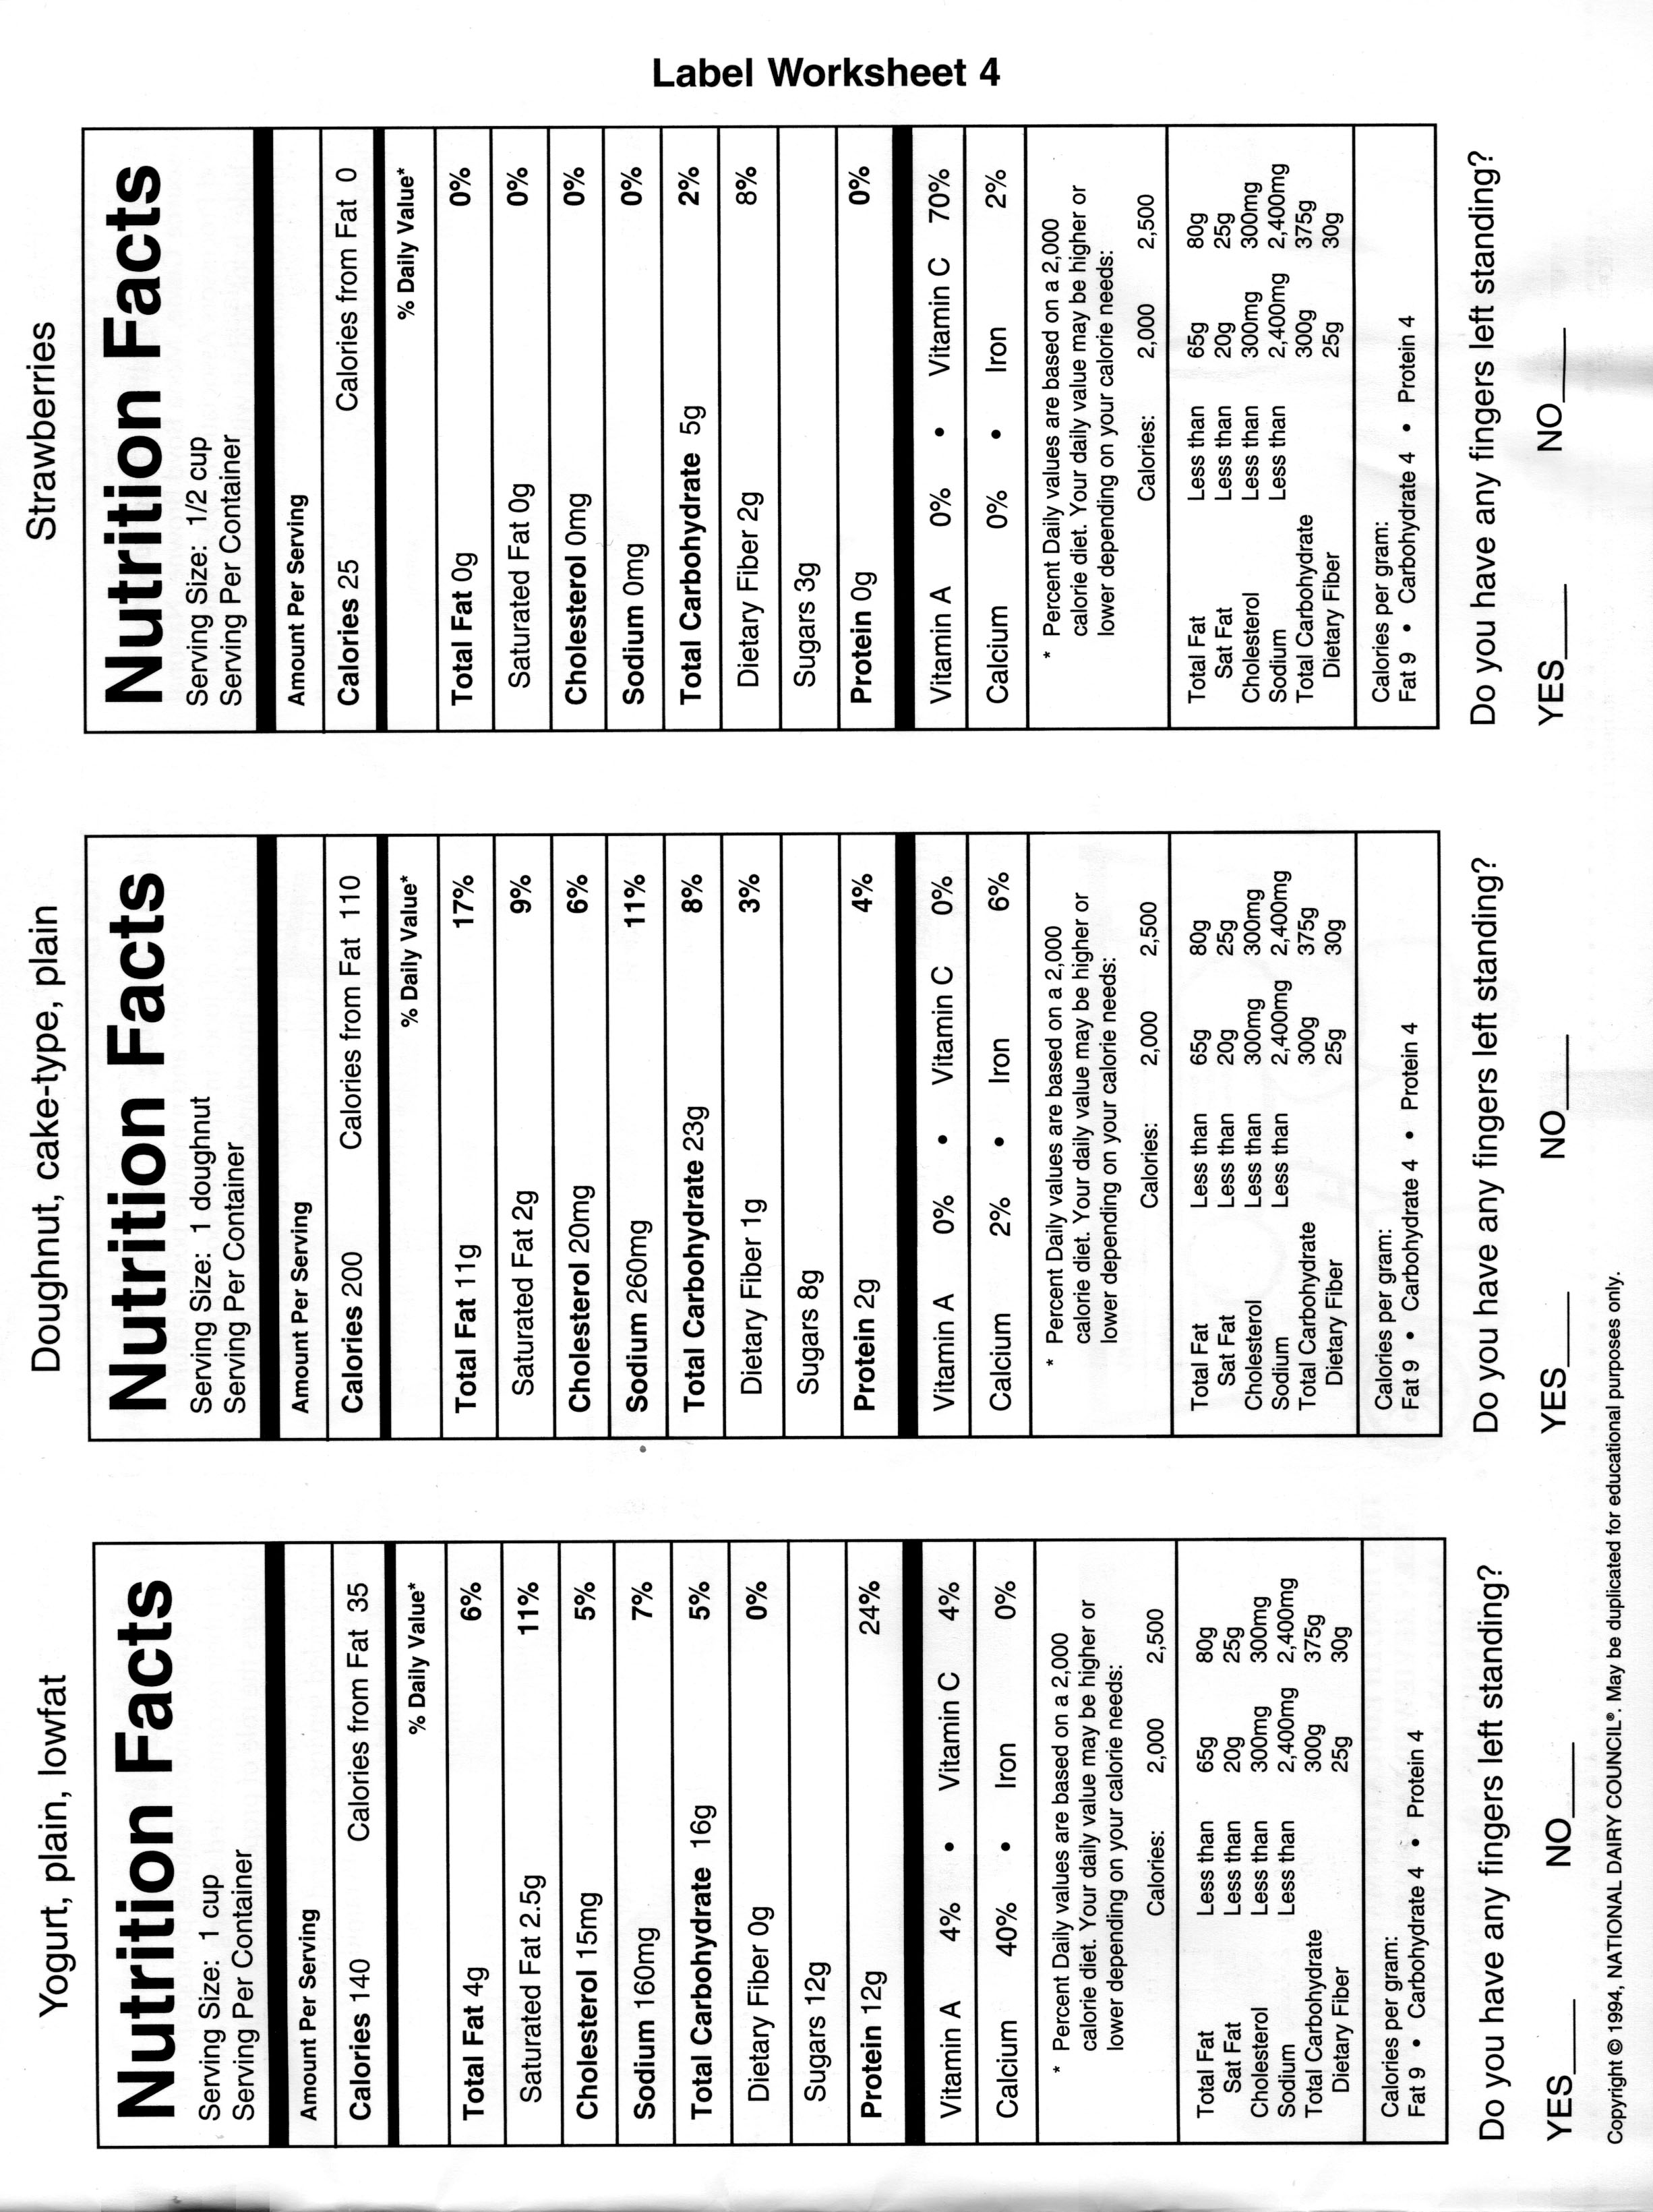 16 Best Images Of Nutrition Label Worksheet